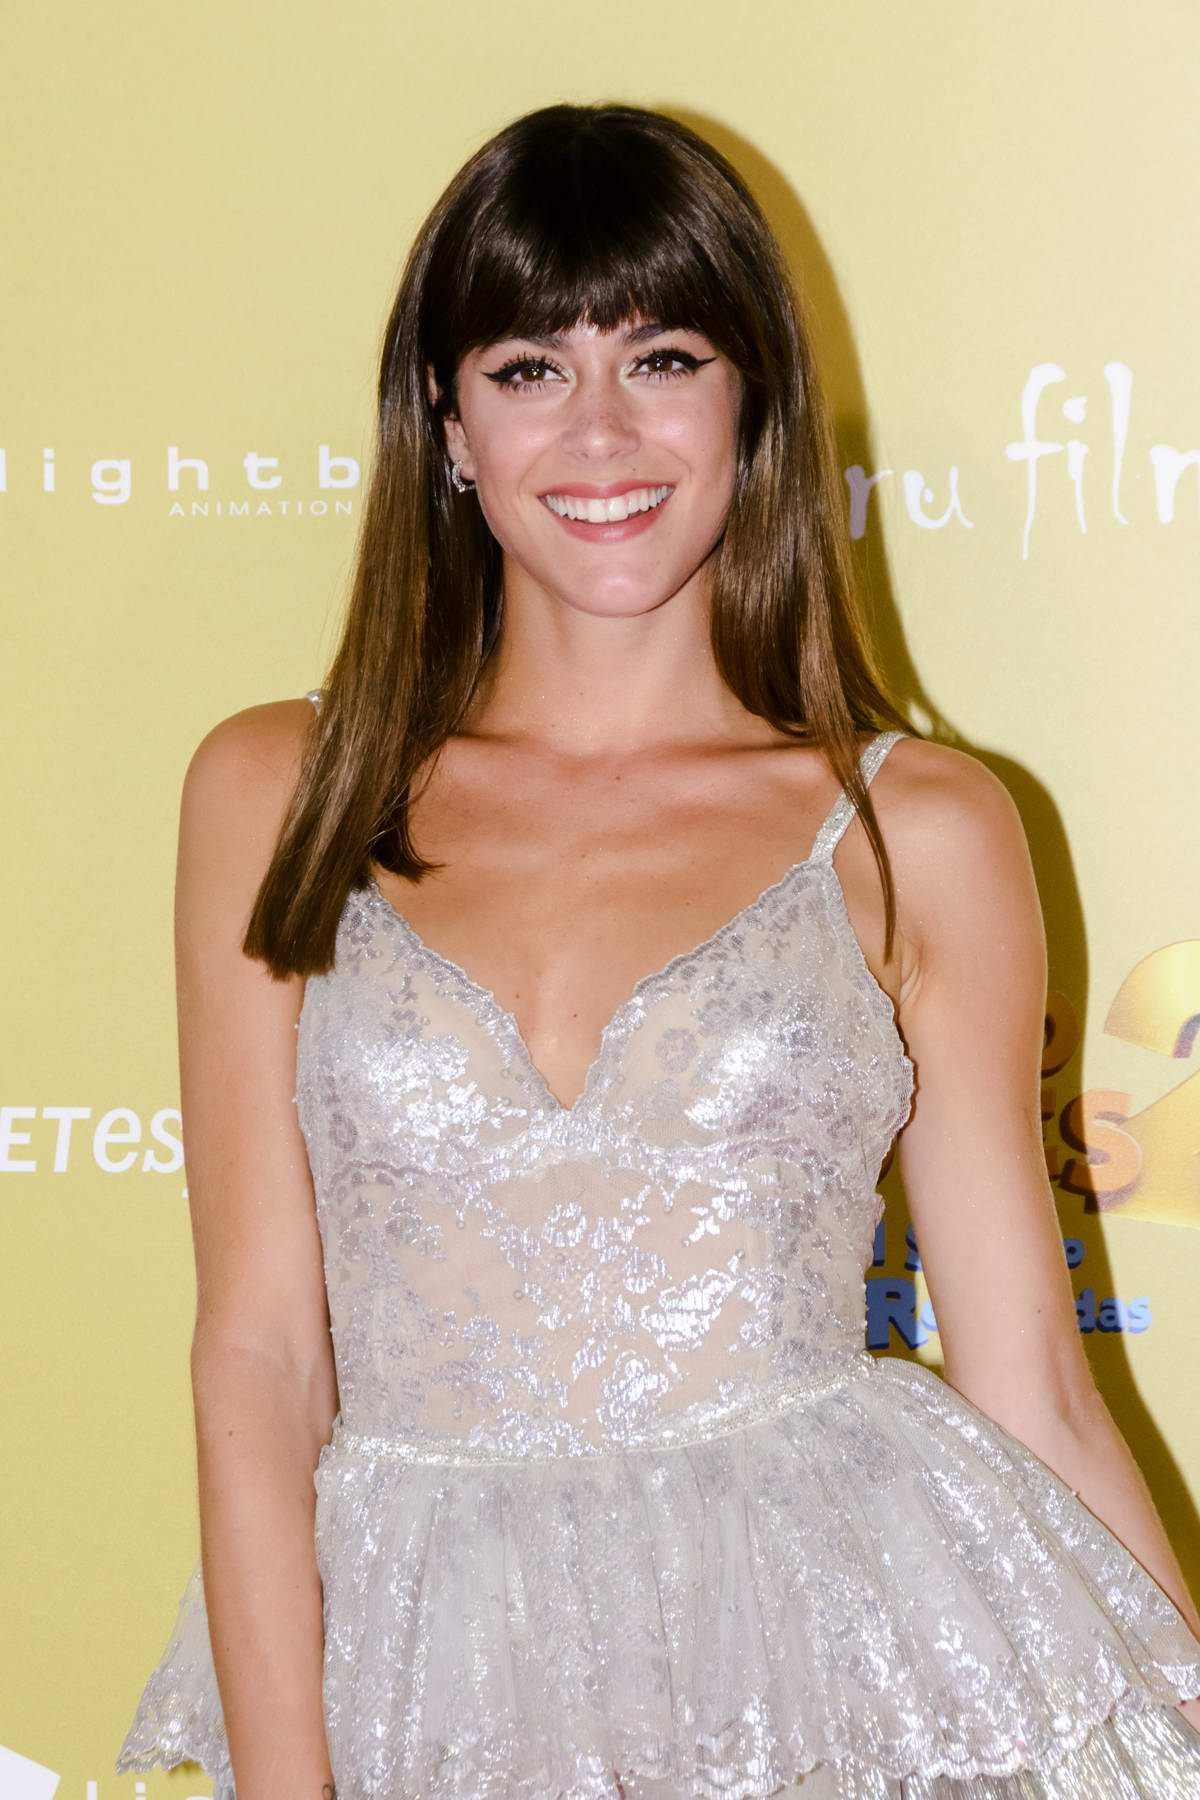 Martina Stoessel attends the Tadeo Jones 2 premiere in Madrid, Spain